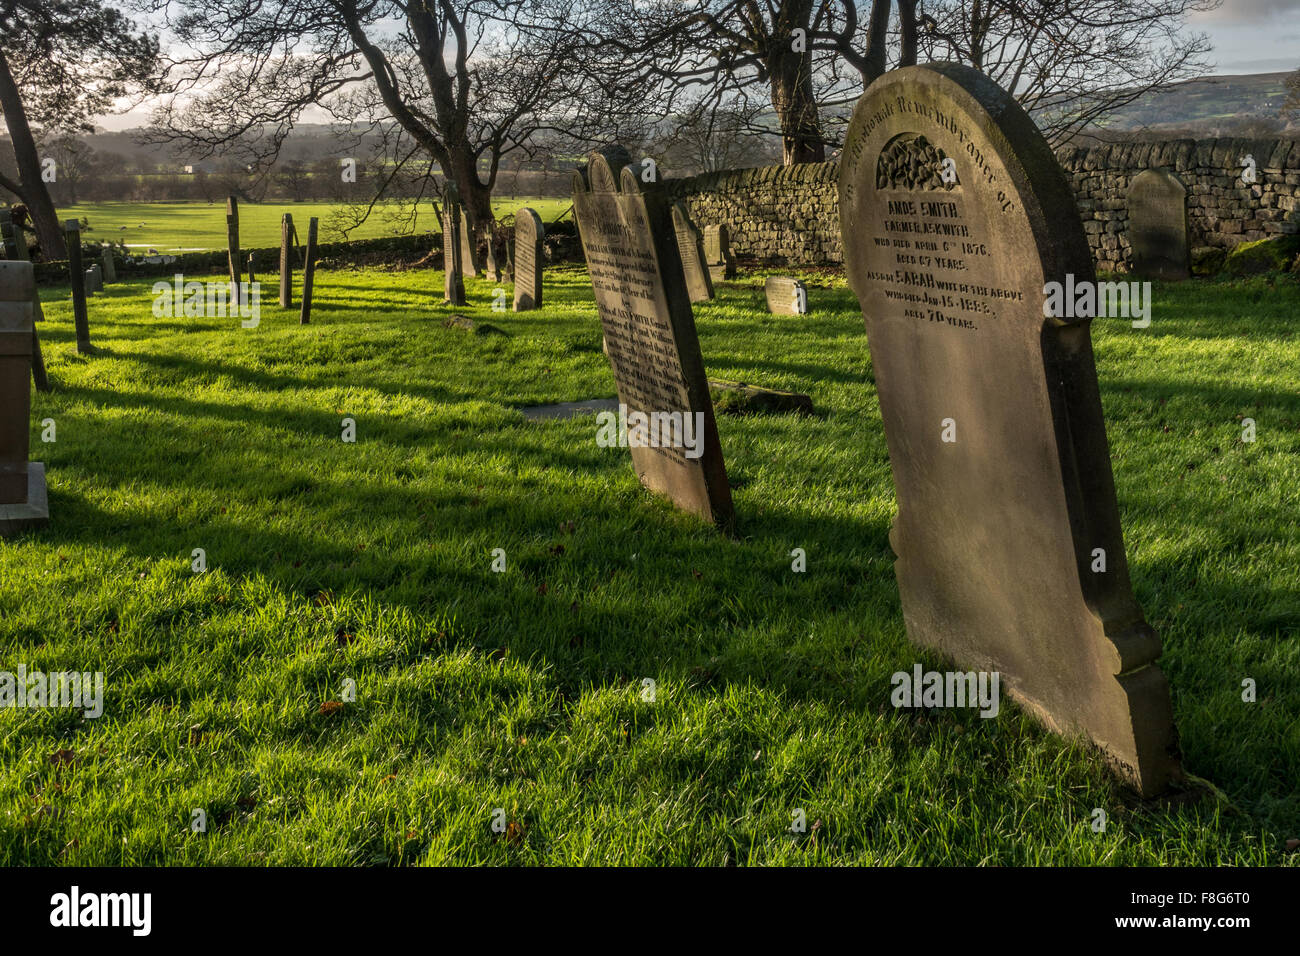 Graveyard telling a life story of early deaths - Stock Image